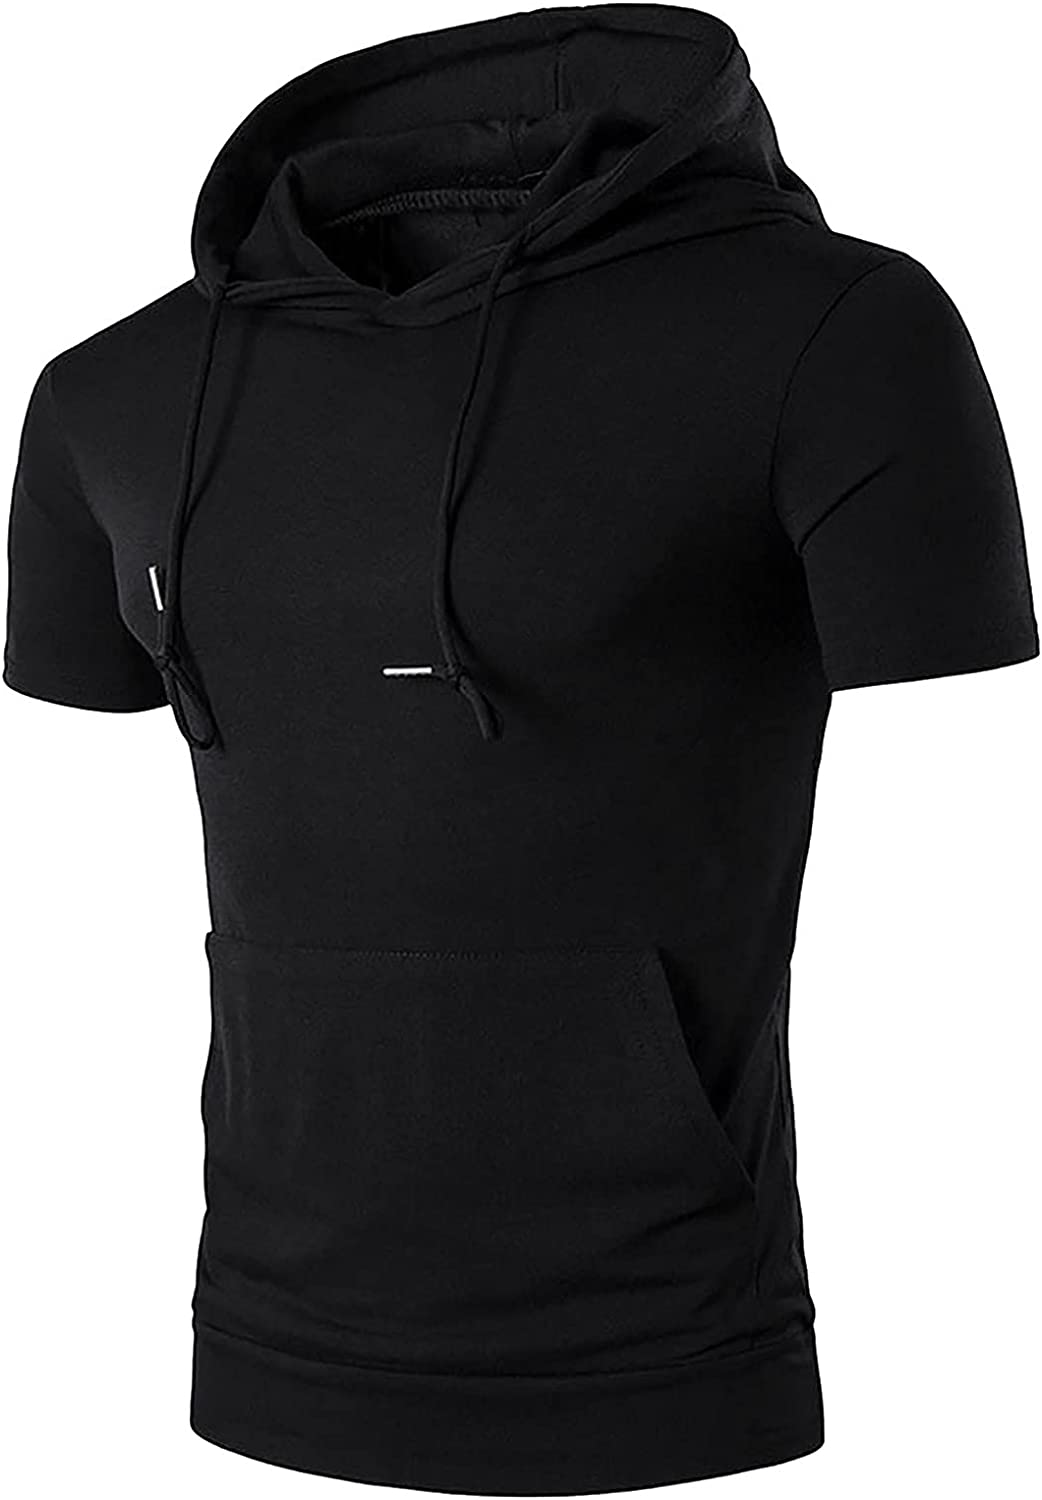 FUNEY Mens Fashion Athletic Hoodies Sport Sweatshirt Short Sleeve Drawsting Shirts Hipster Hip Hop Pullover with Pockets